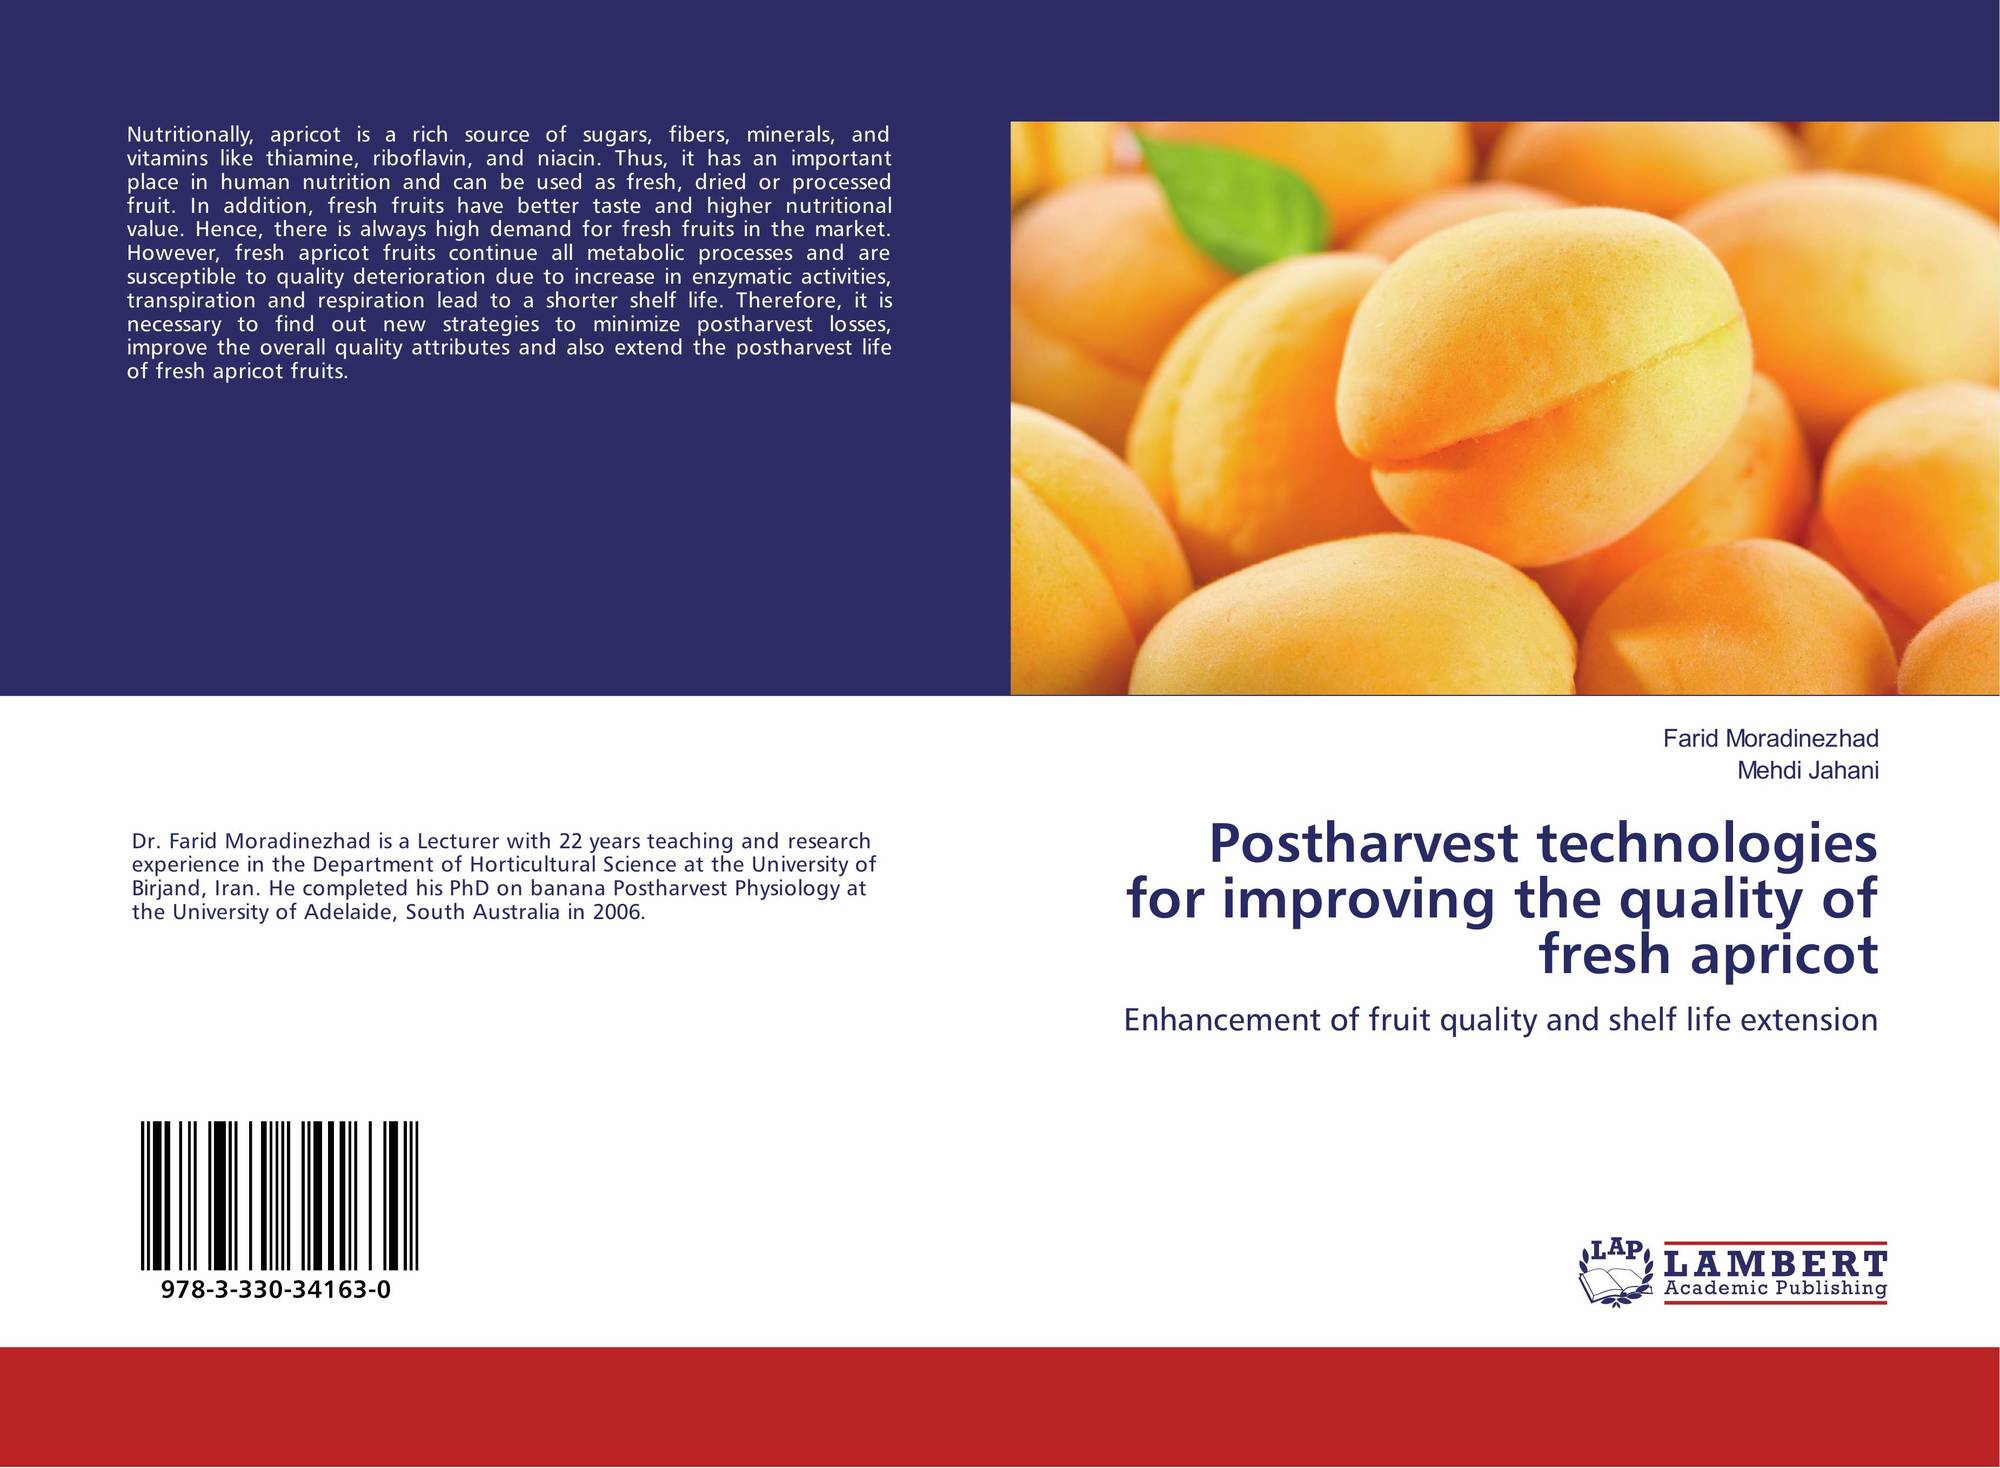 factors affecting the postharvest life of fruit biology essay Apart from mechanical hurt and improper crop clip, h2o loss is the most indispensable cause of short shelf life and decreased quality of postharvest horticultural merchandises ( stanley p burg, 2004 ).